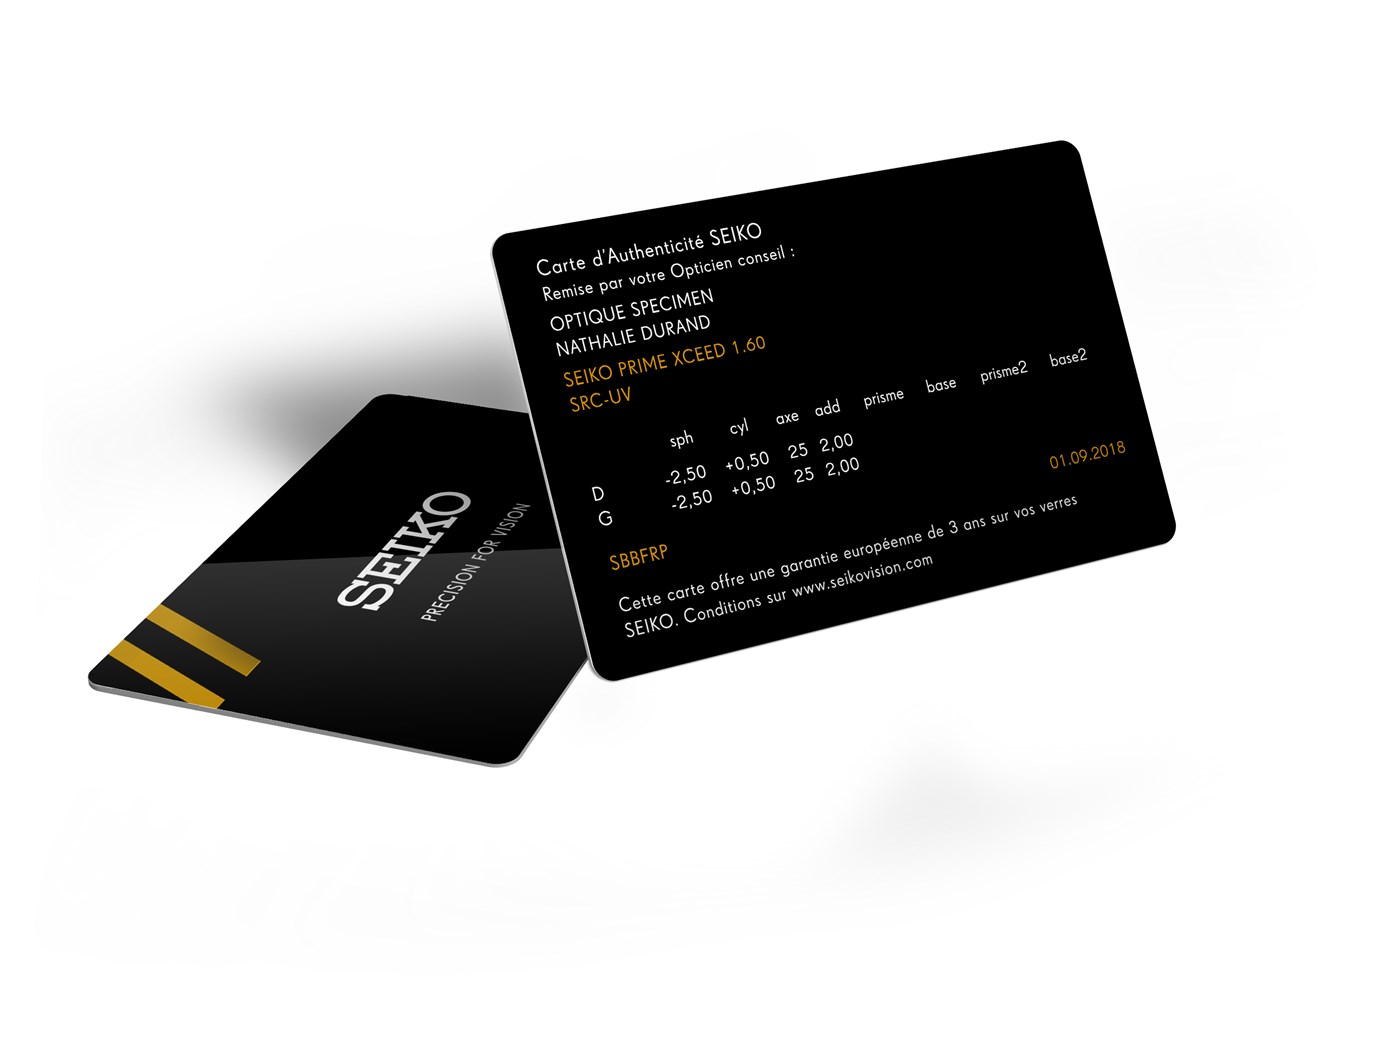 SEIKO information card